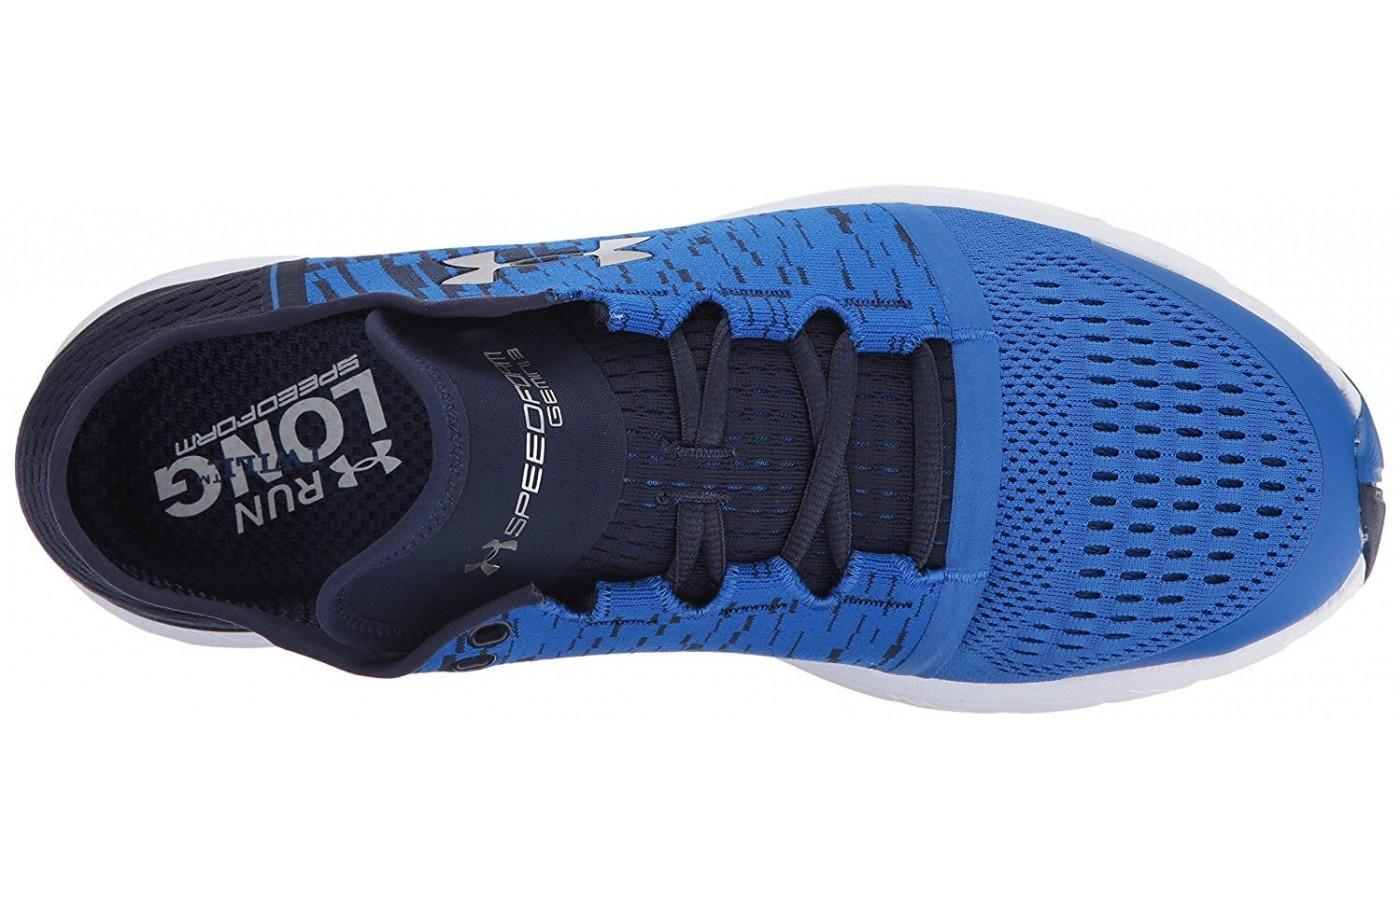 The patented midsole foam provides a responsive ride.